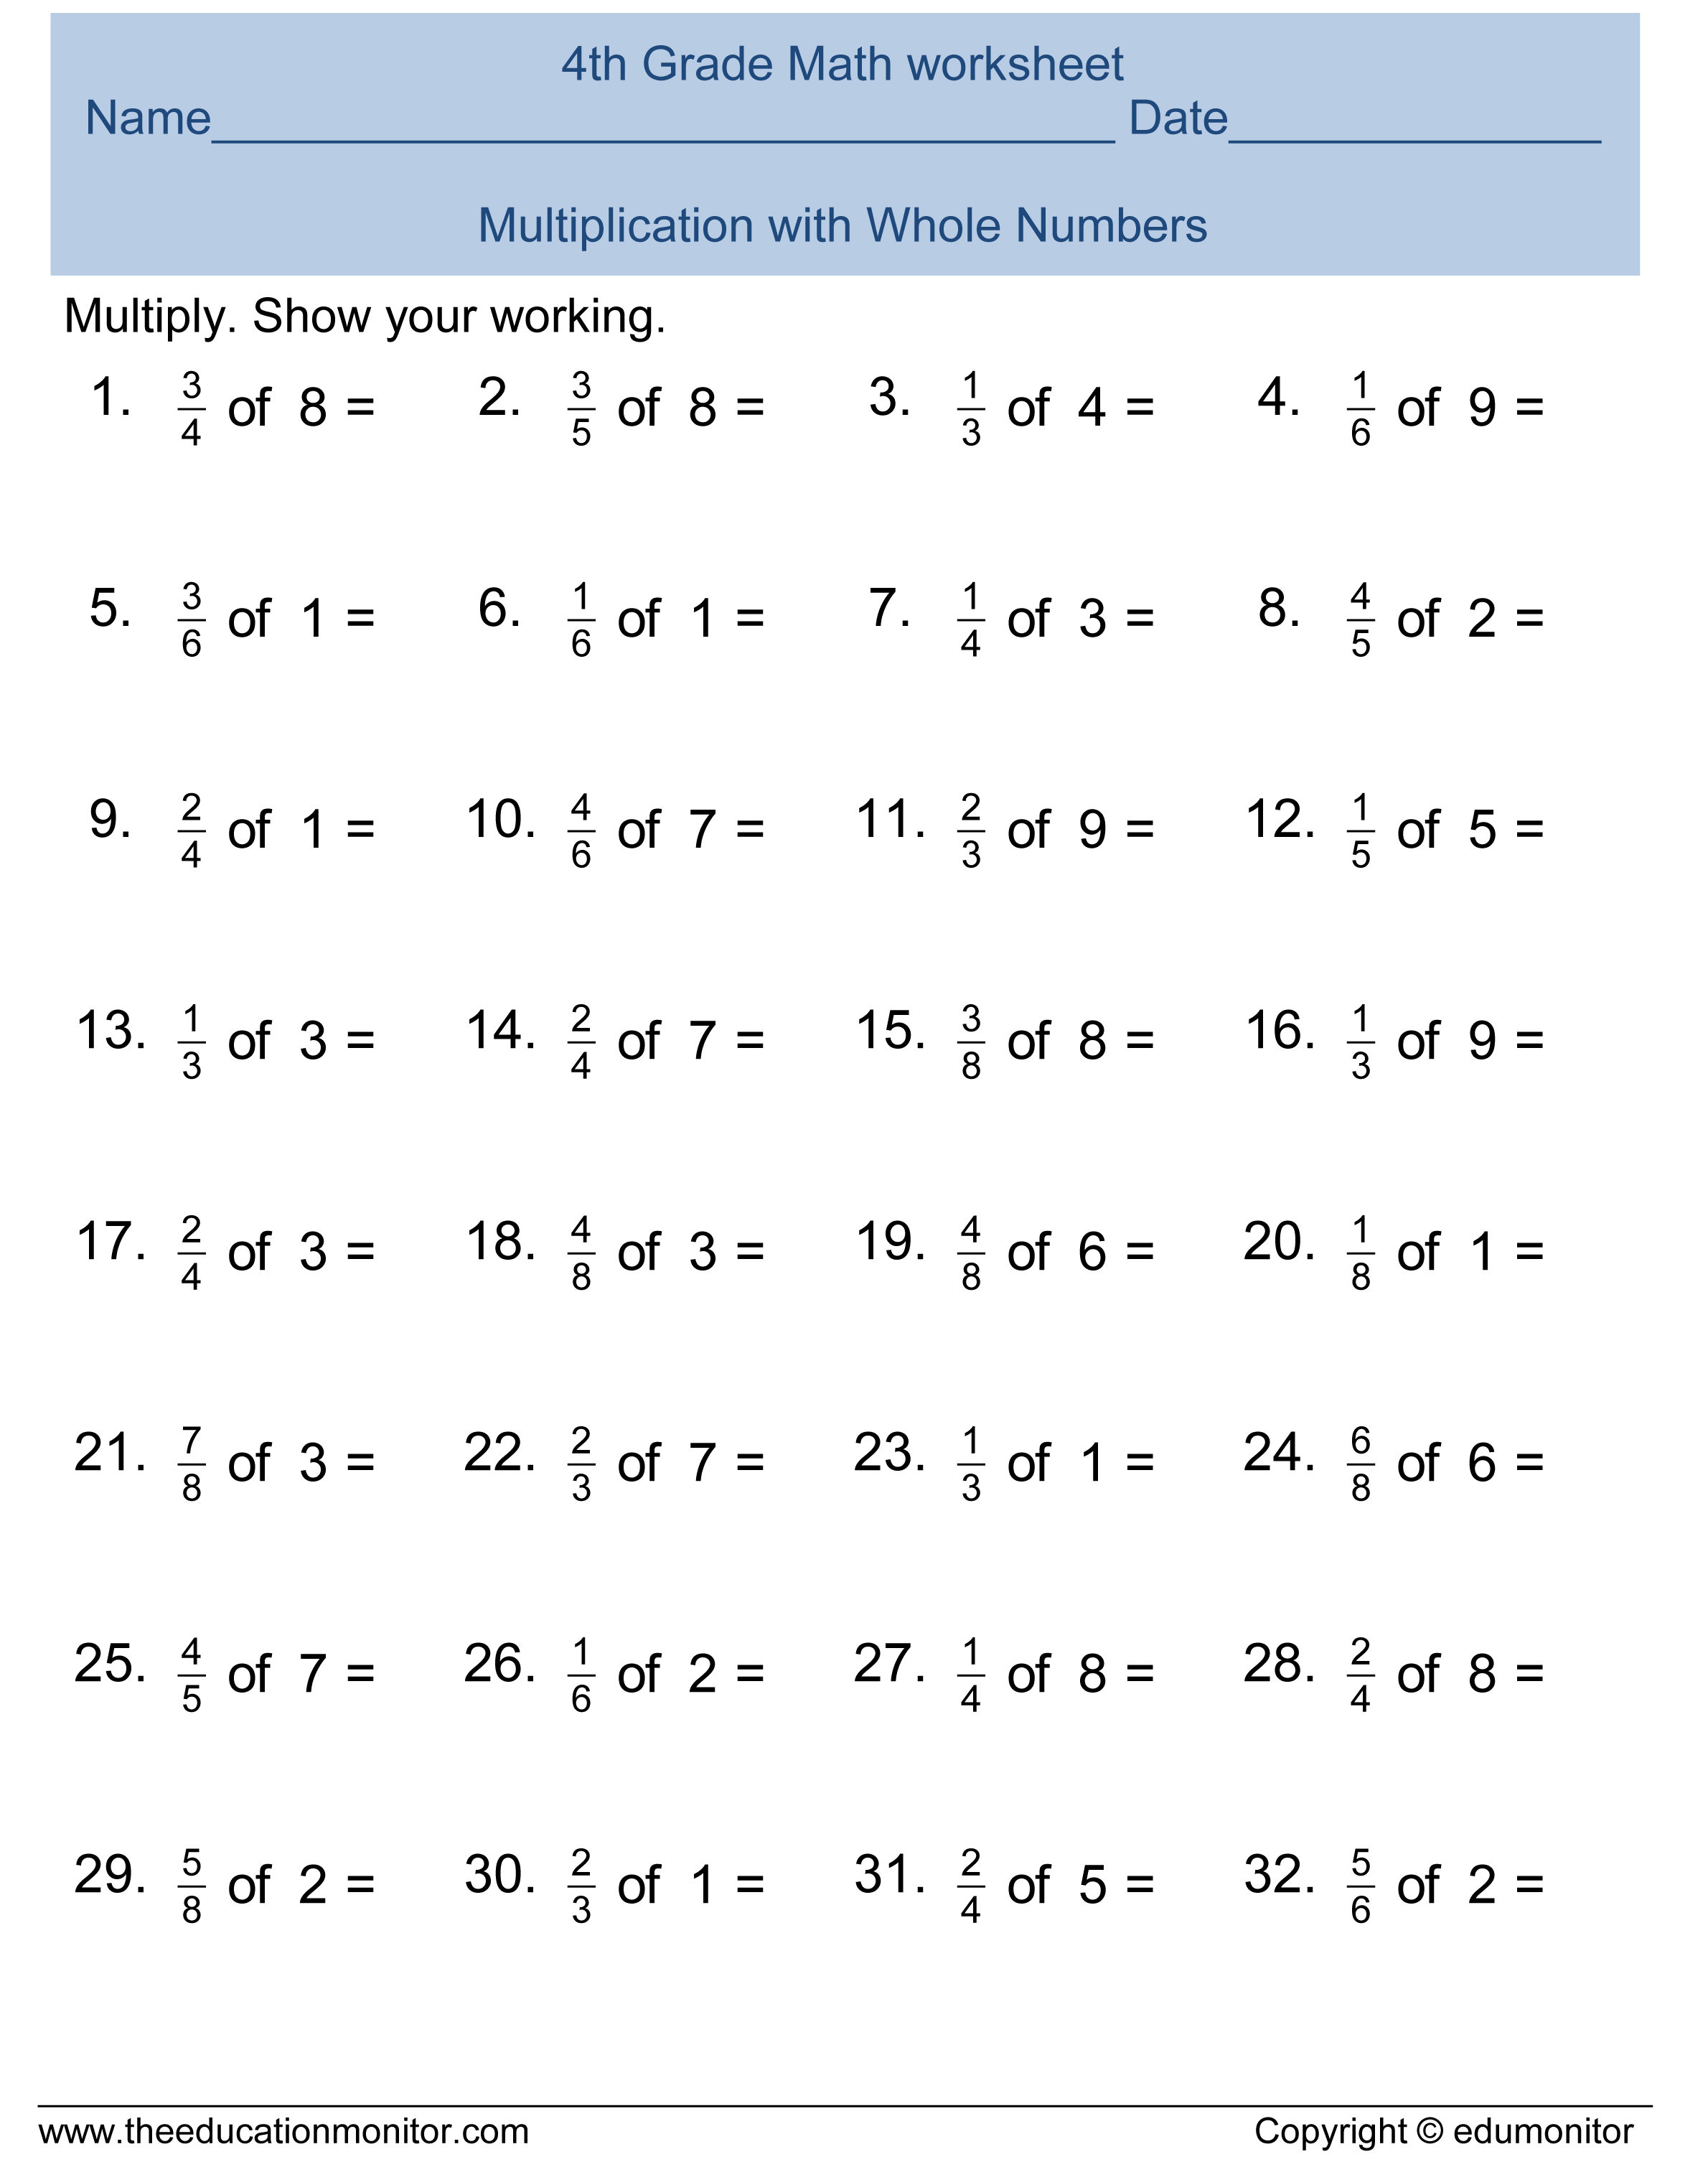 math worksheet : free printable worksheets for 4th grade : 5th Grade Math Worksheets Free